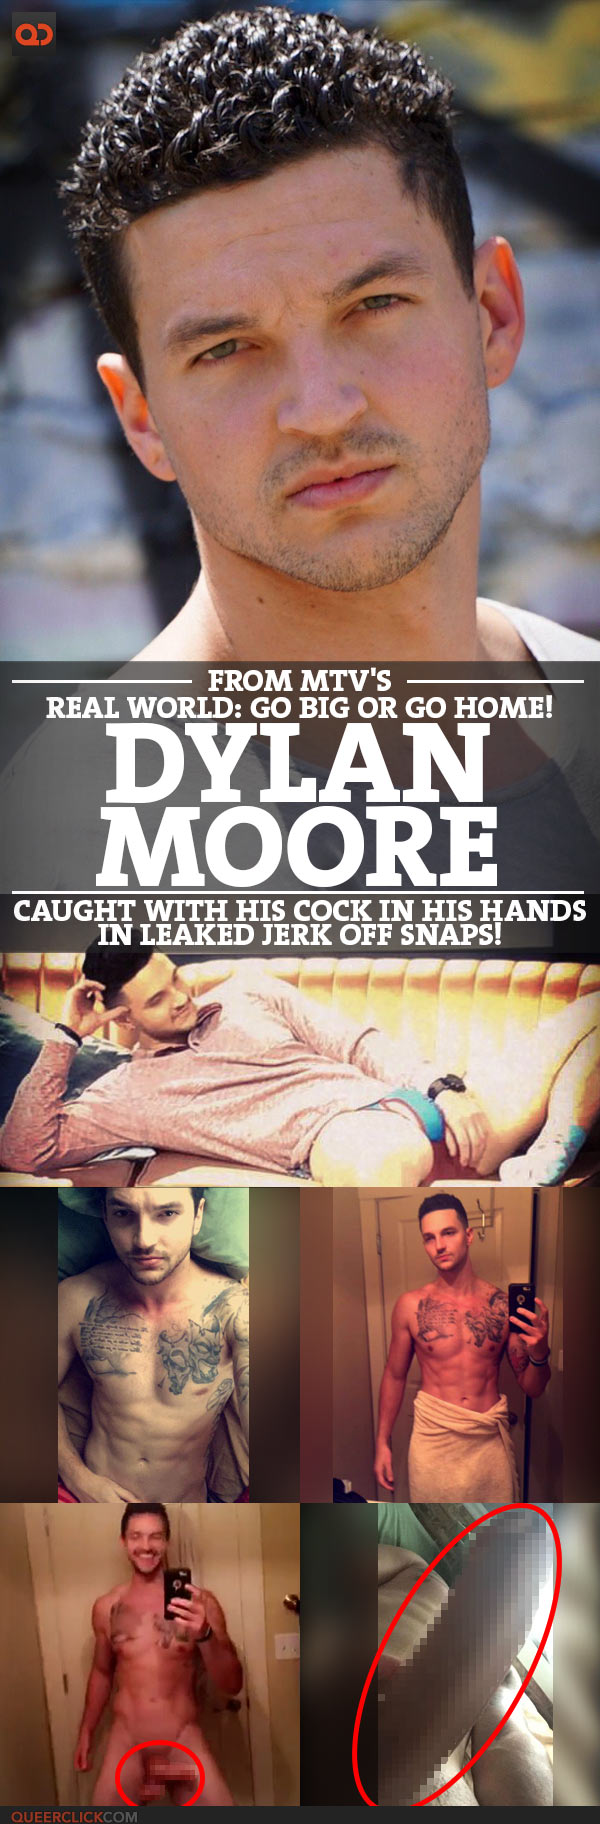 Dylan Moore, From MTV's Real World Go Big Or Go Home, Caught With His Cock In His Hands In Leaked Jerk Off Snaps!